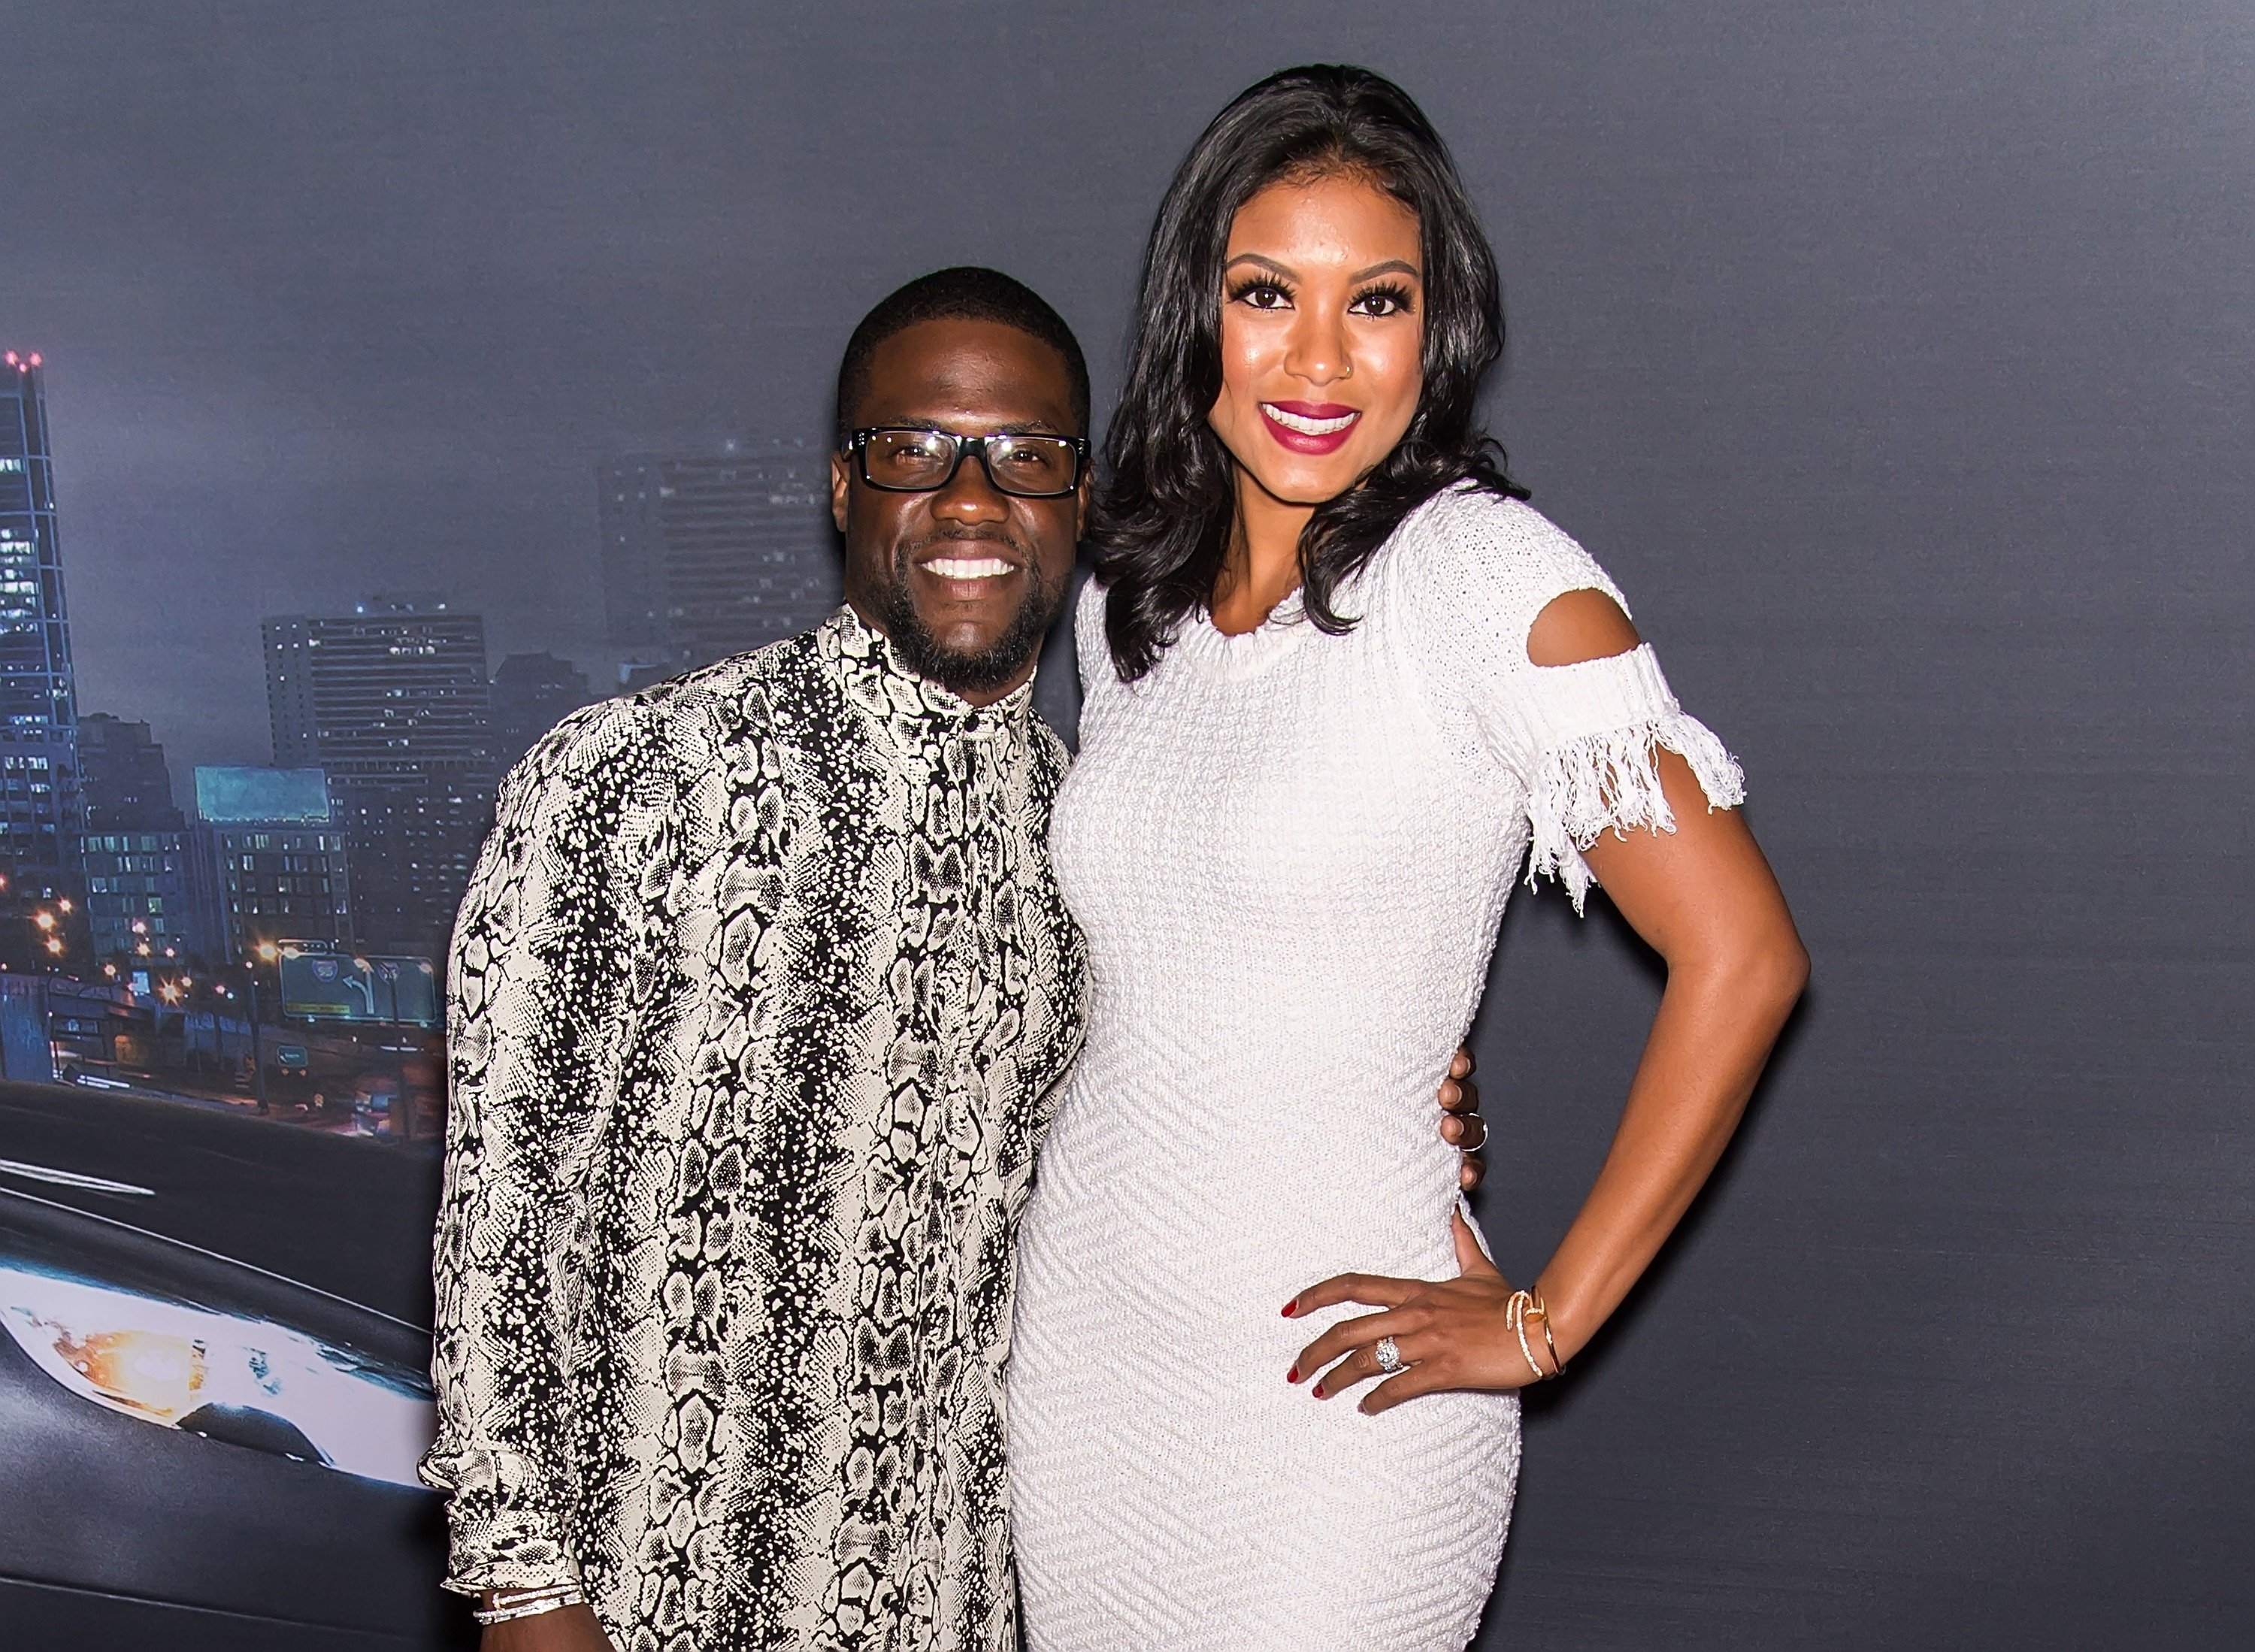 Kevin and Eniko Hart at 'Kevin Hart: What Now?' Philadelphia Screening on Oct. 12, 2016 | Photo: Getty Images